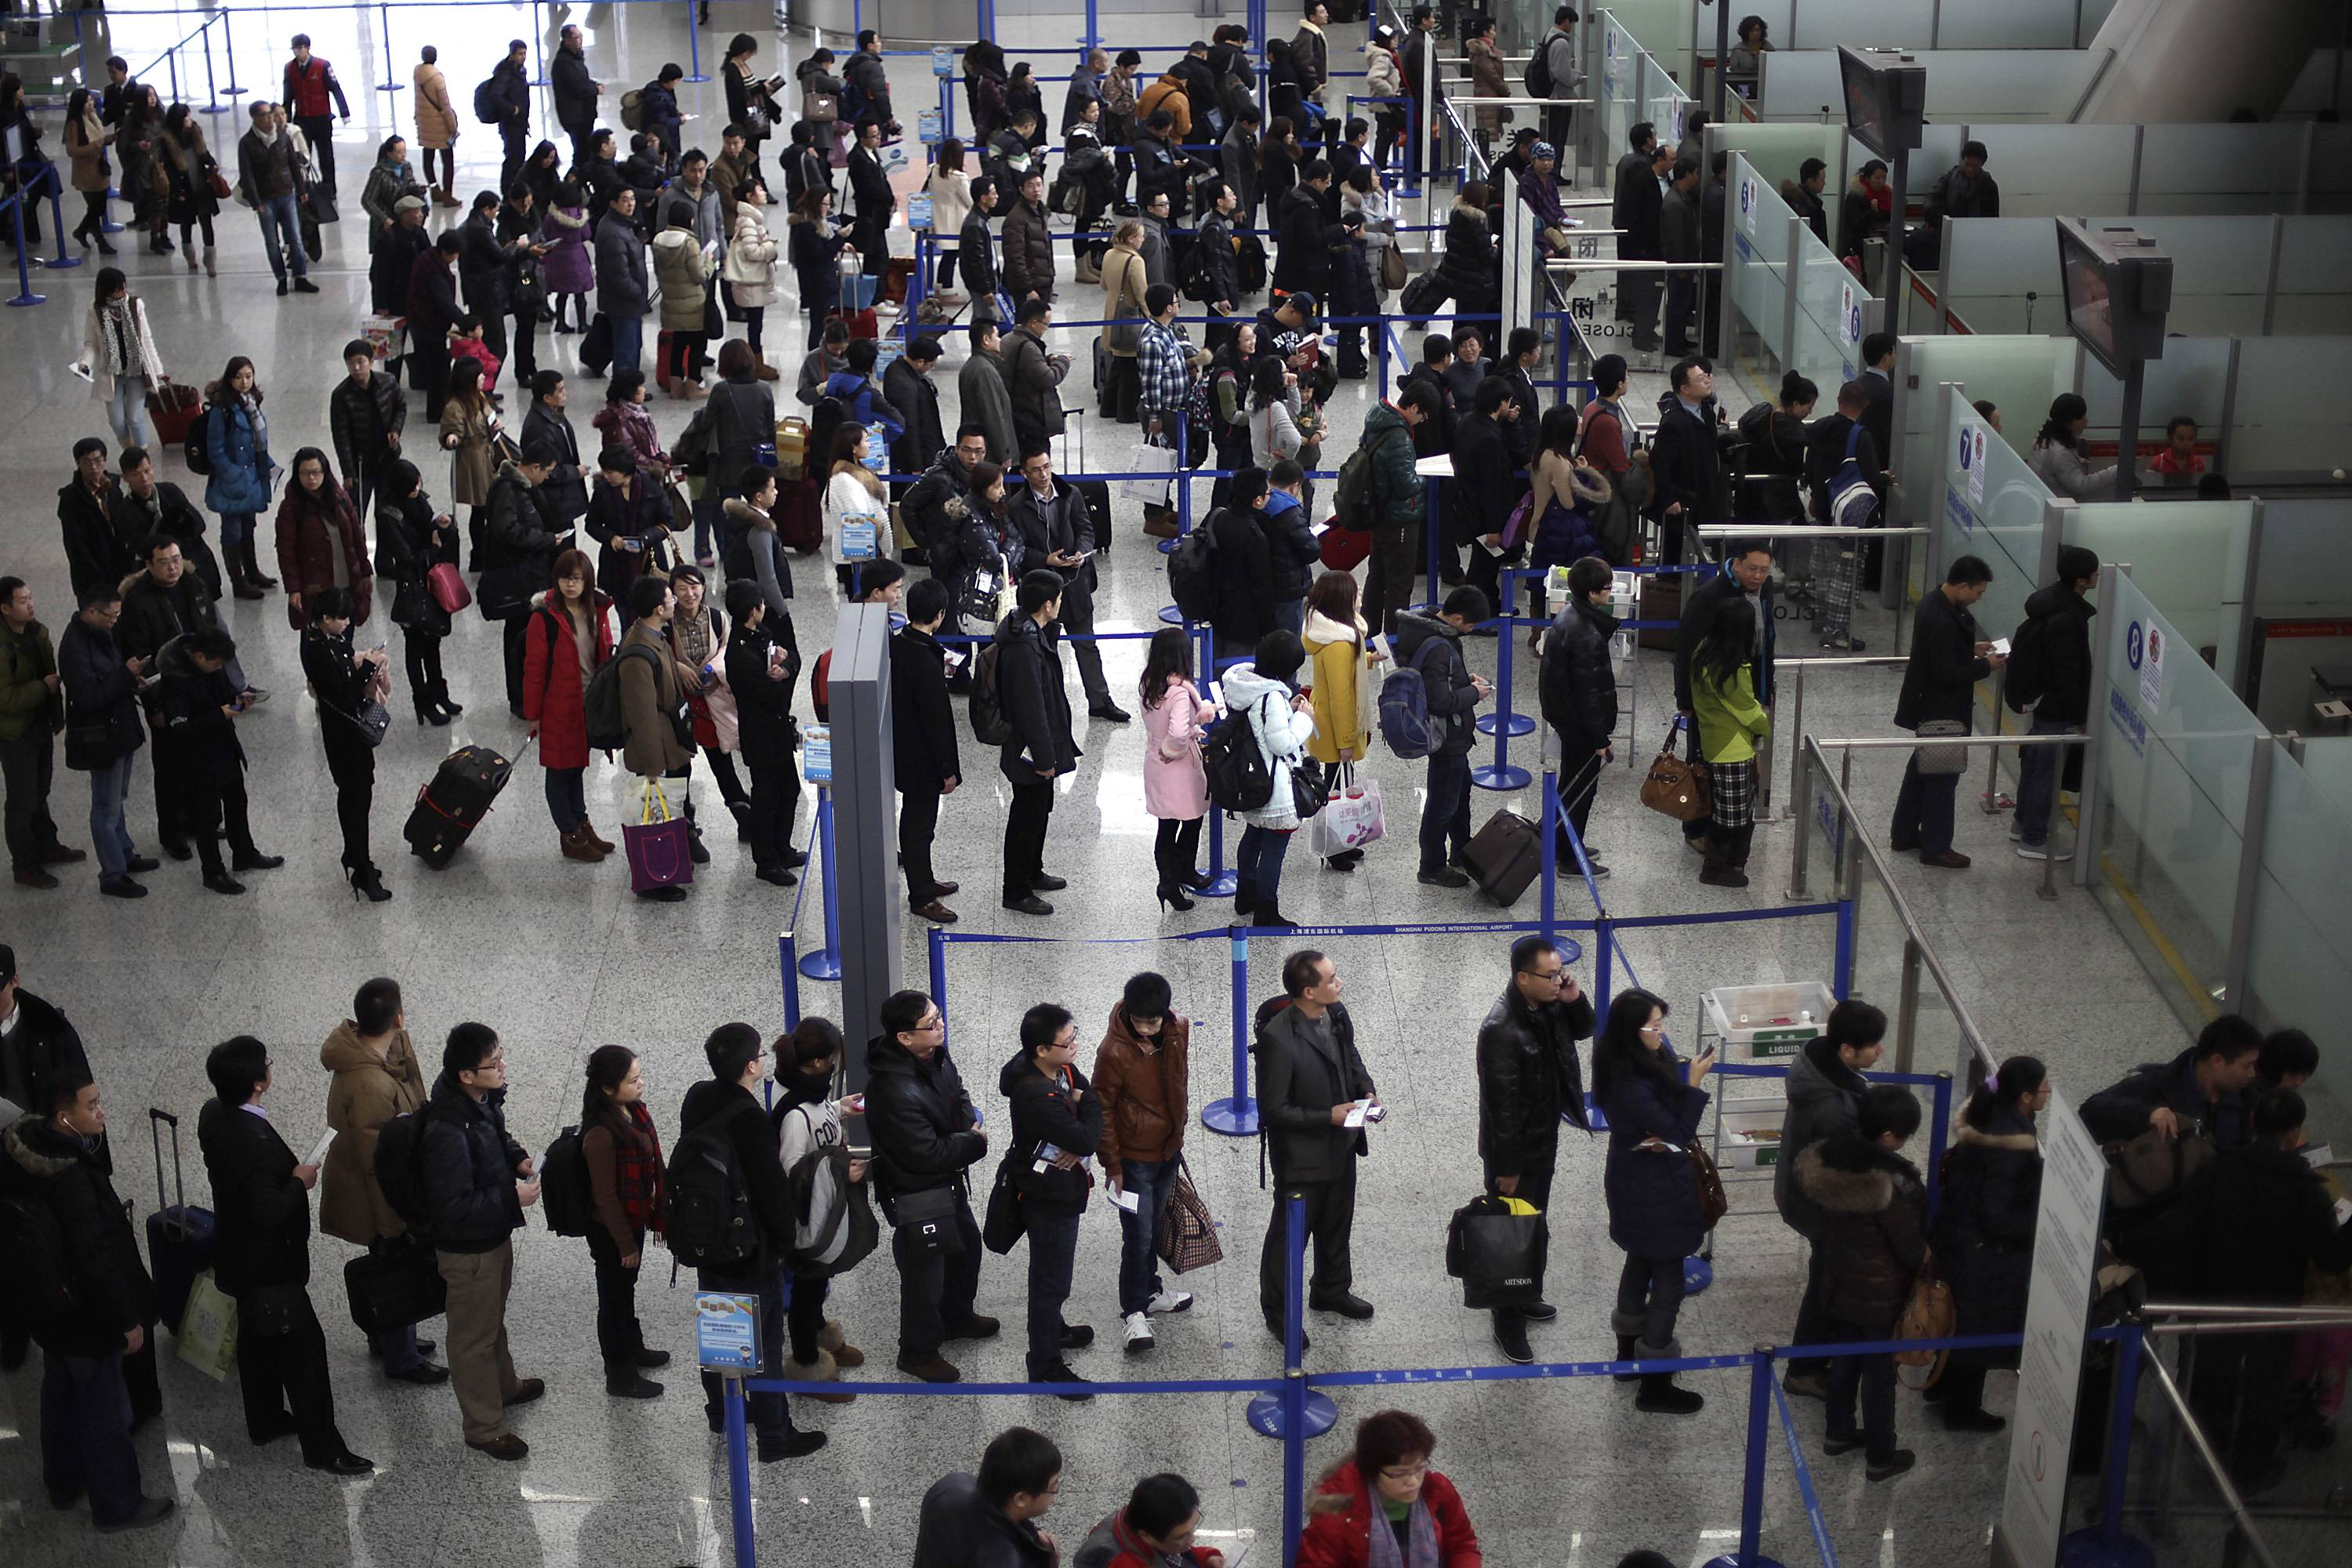 In 2012 photo, passengers queue up for a security check at Pudong International Airport in Shanghai, China. The Transportation Security Administration is requiring passengers at some overseas airports that offer U.S.-bound flights to power on their electronic devices.